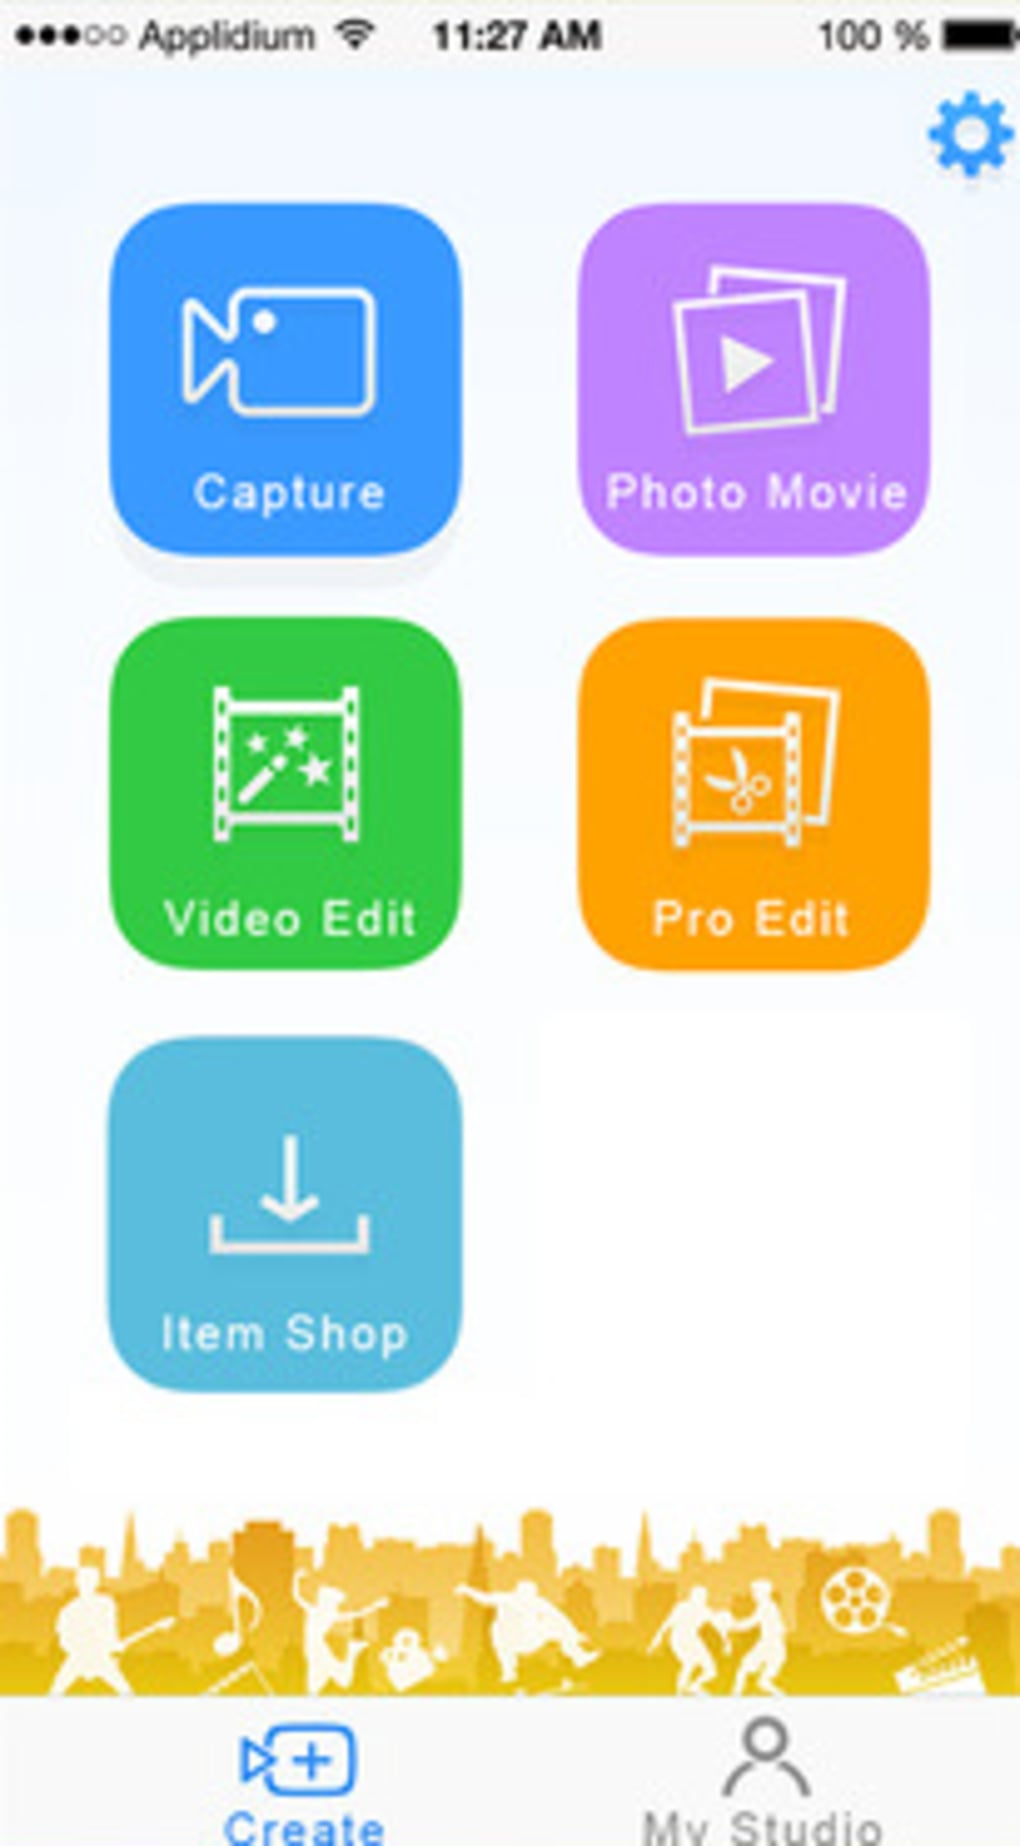 Viva video app download without watermark | 7 Best Free Video